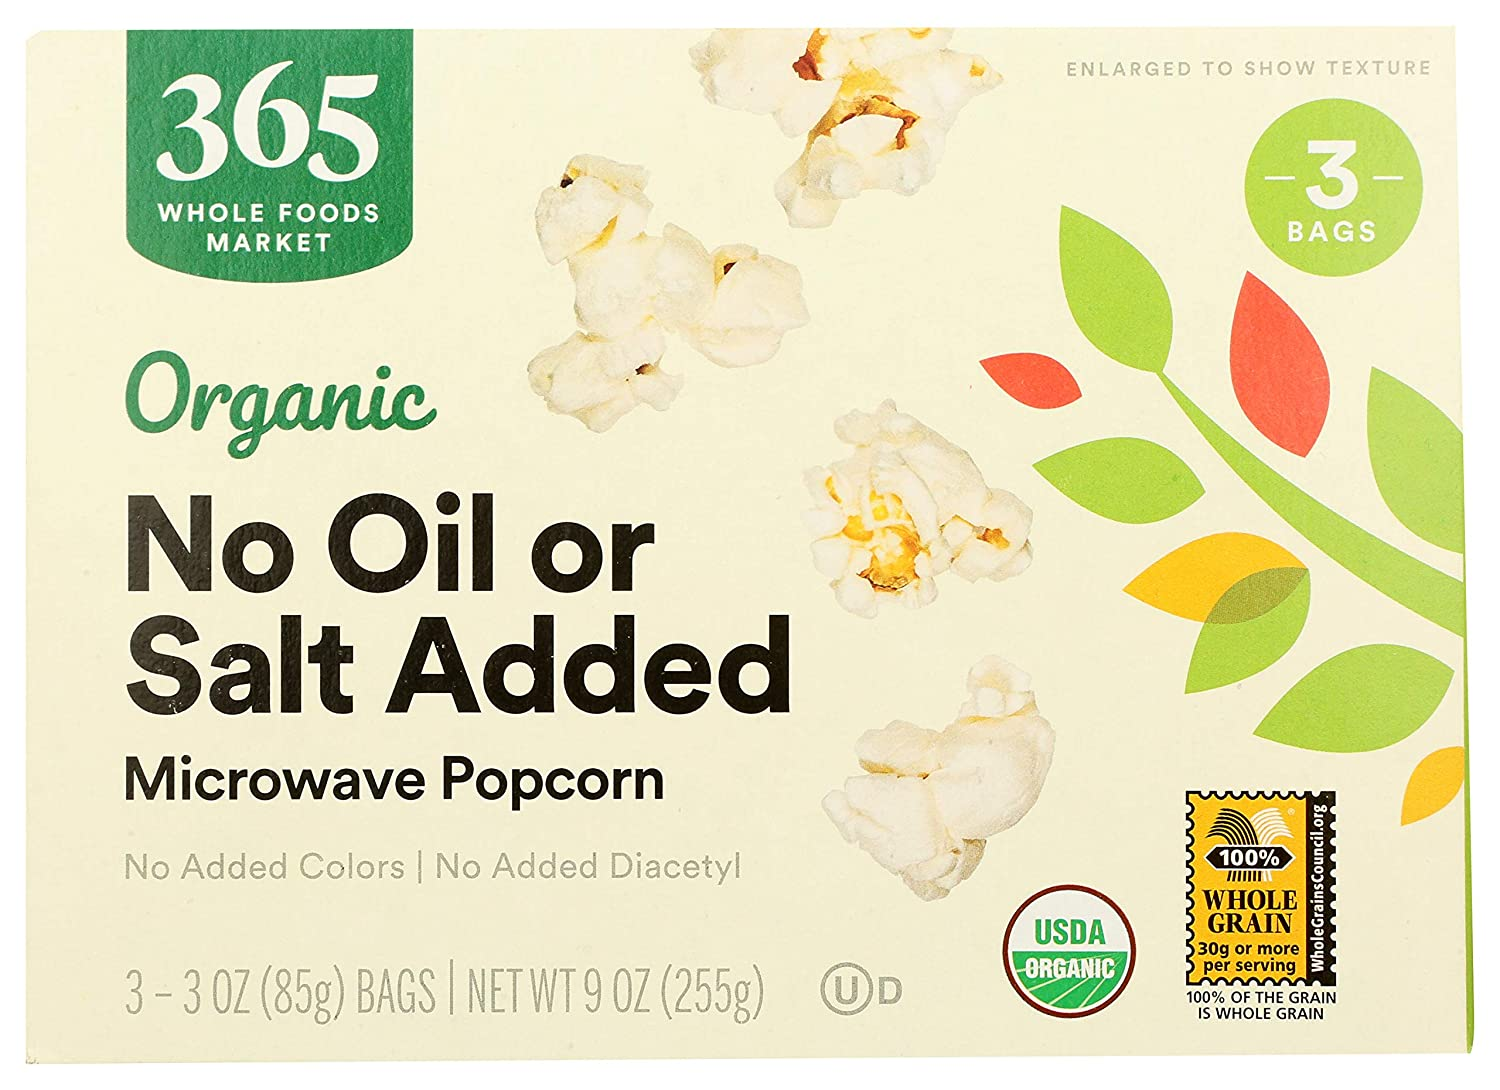 365 by Whole Foods Market, Organic Microwave Popcorn, No Oil or Salt Added (3 - 3.5oz Bags), 9 Ounce